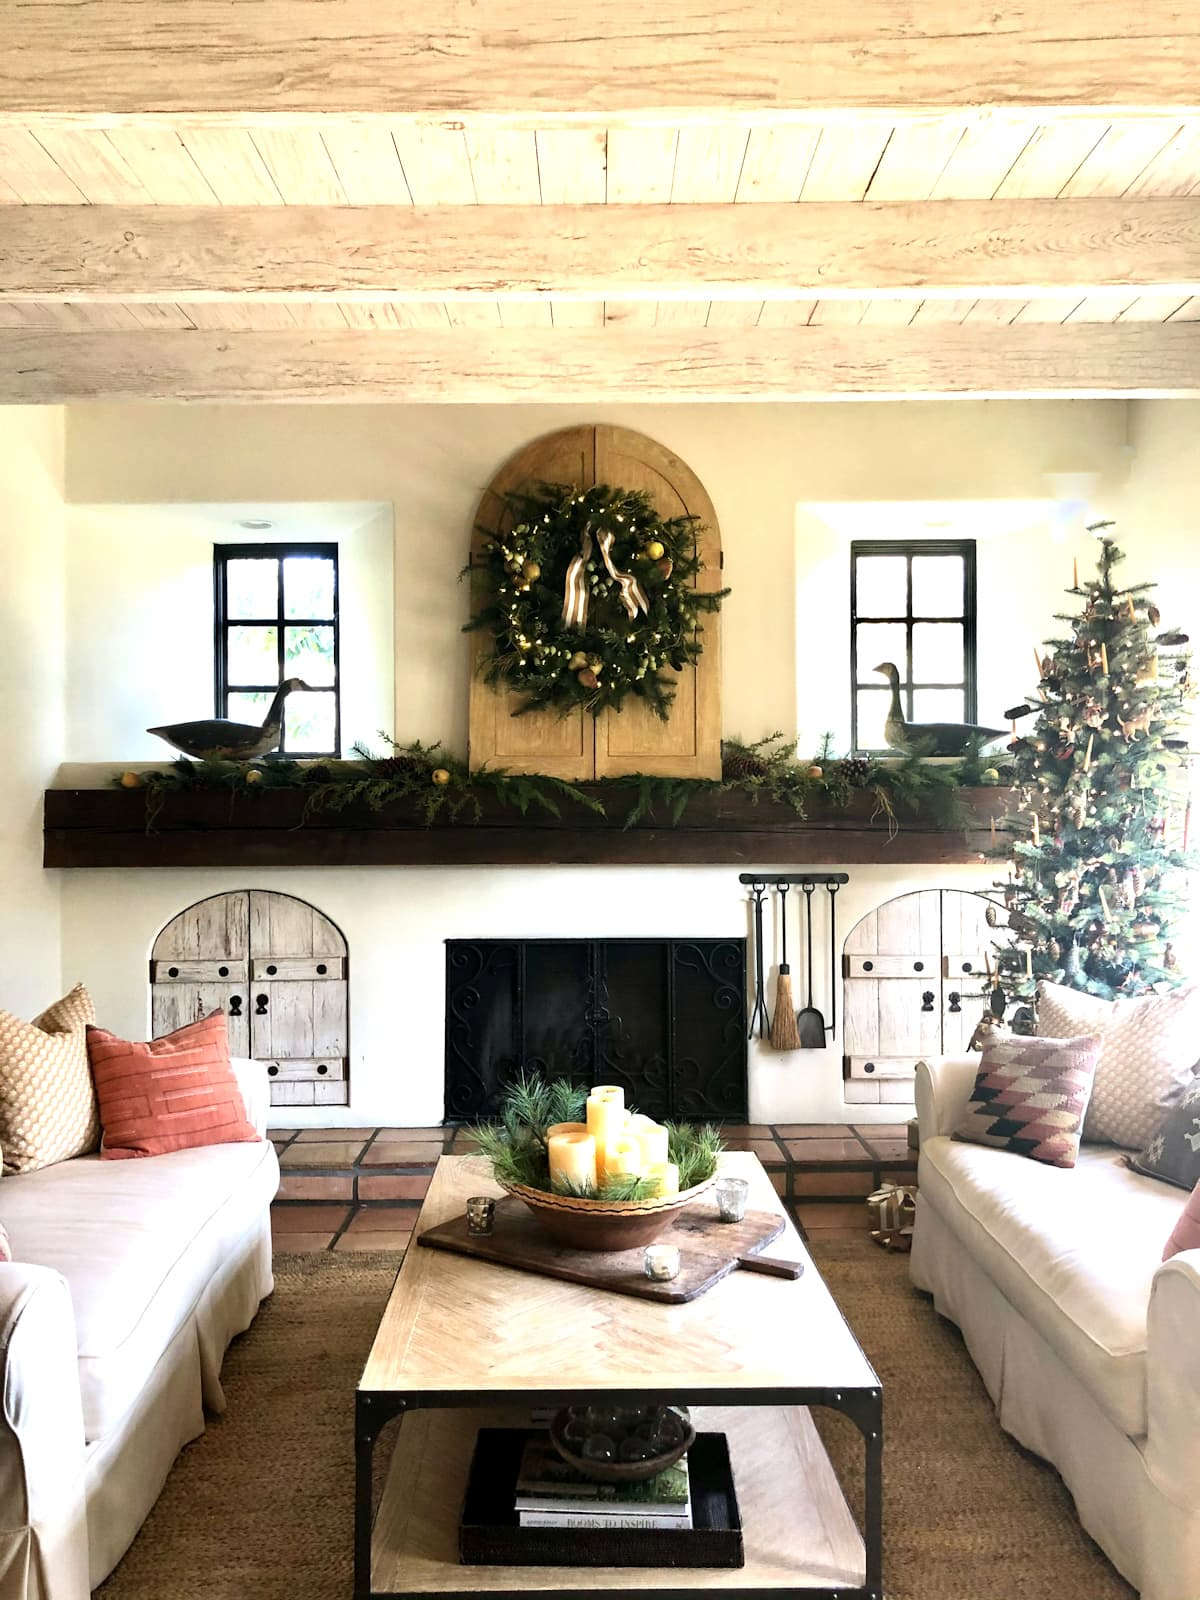 cindy hattersley's family room decorated for Christmas